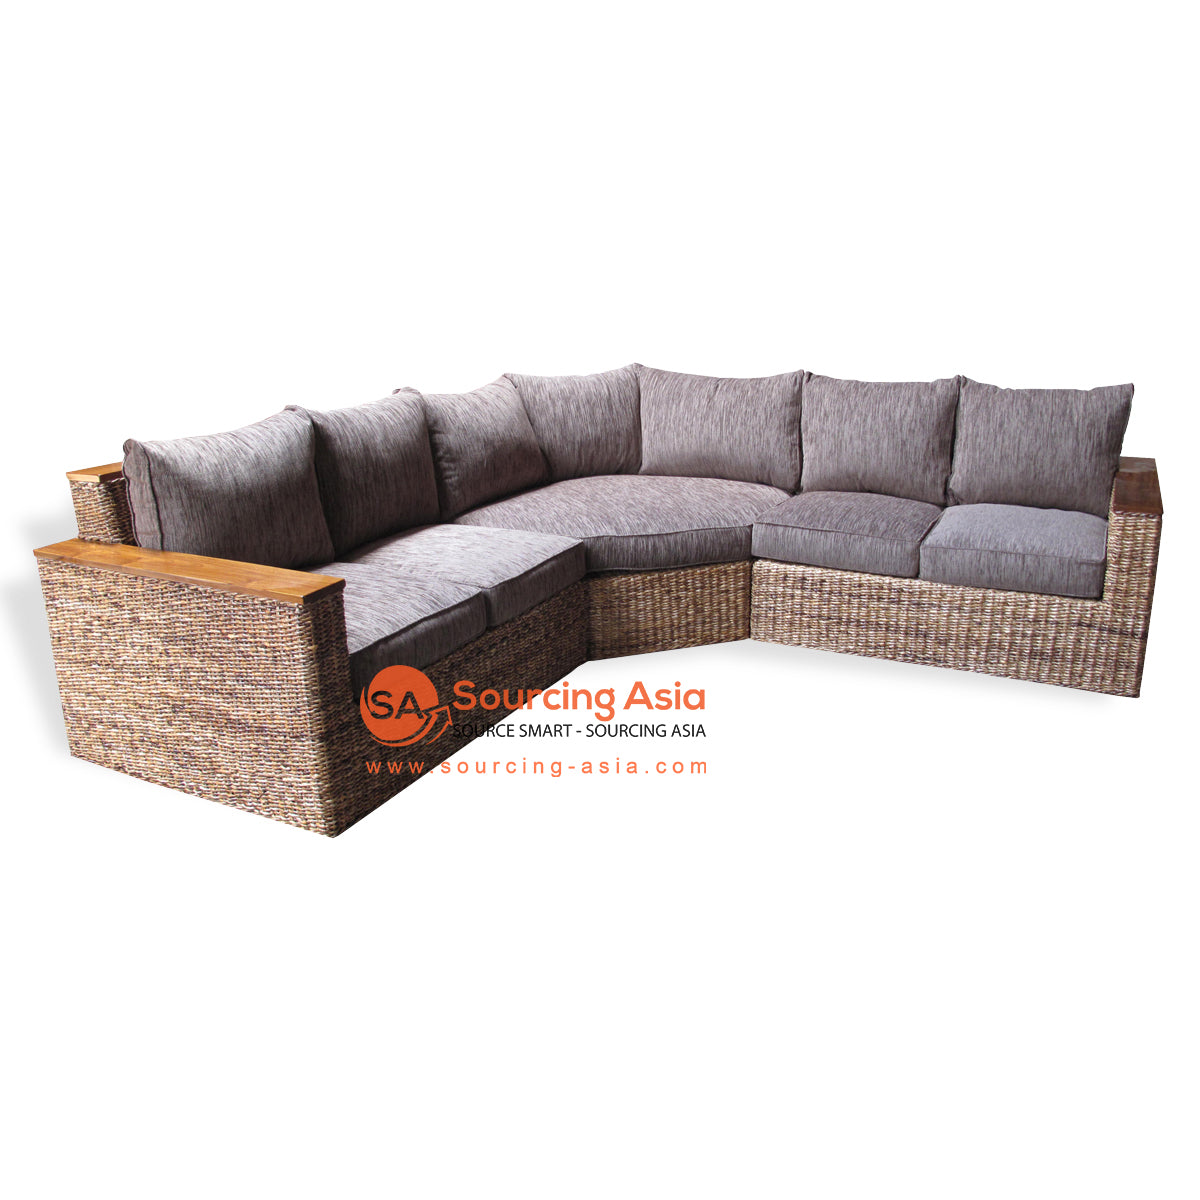 SF44-CNR-3 SEATS SOFA WITH WOODEN ARMS